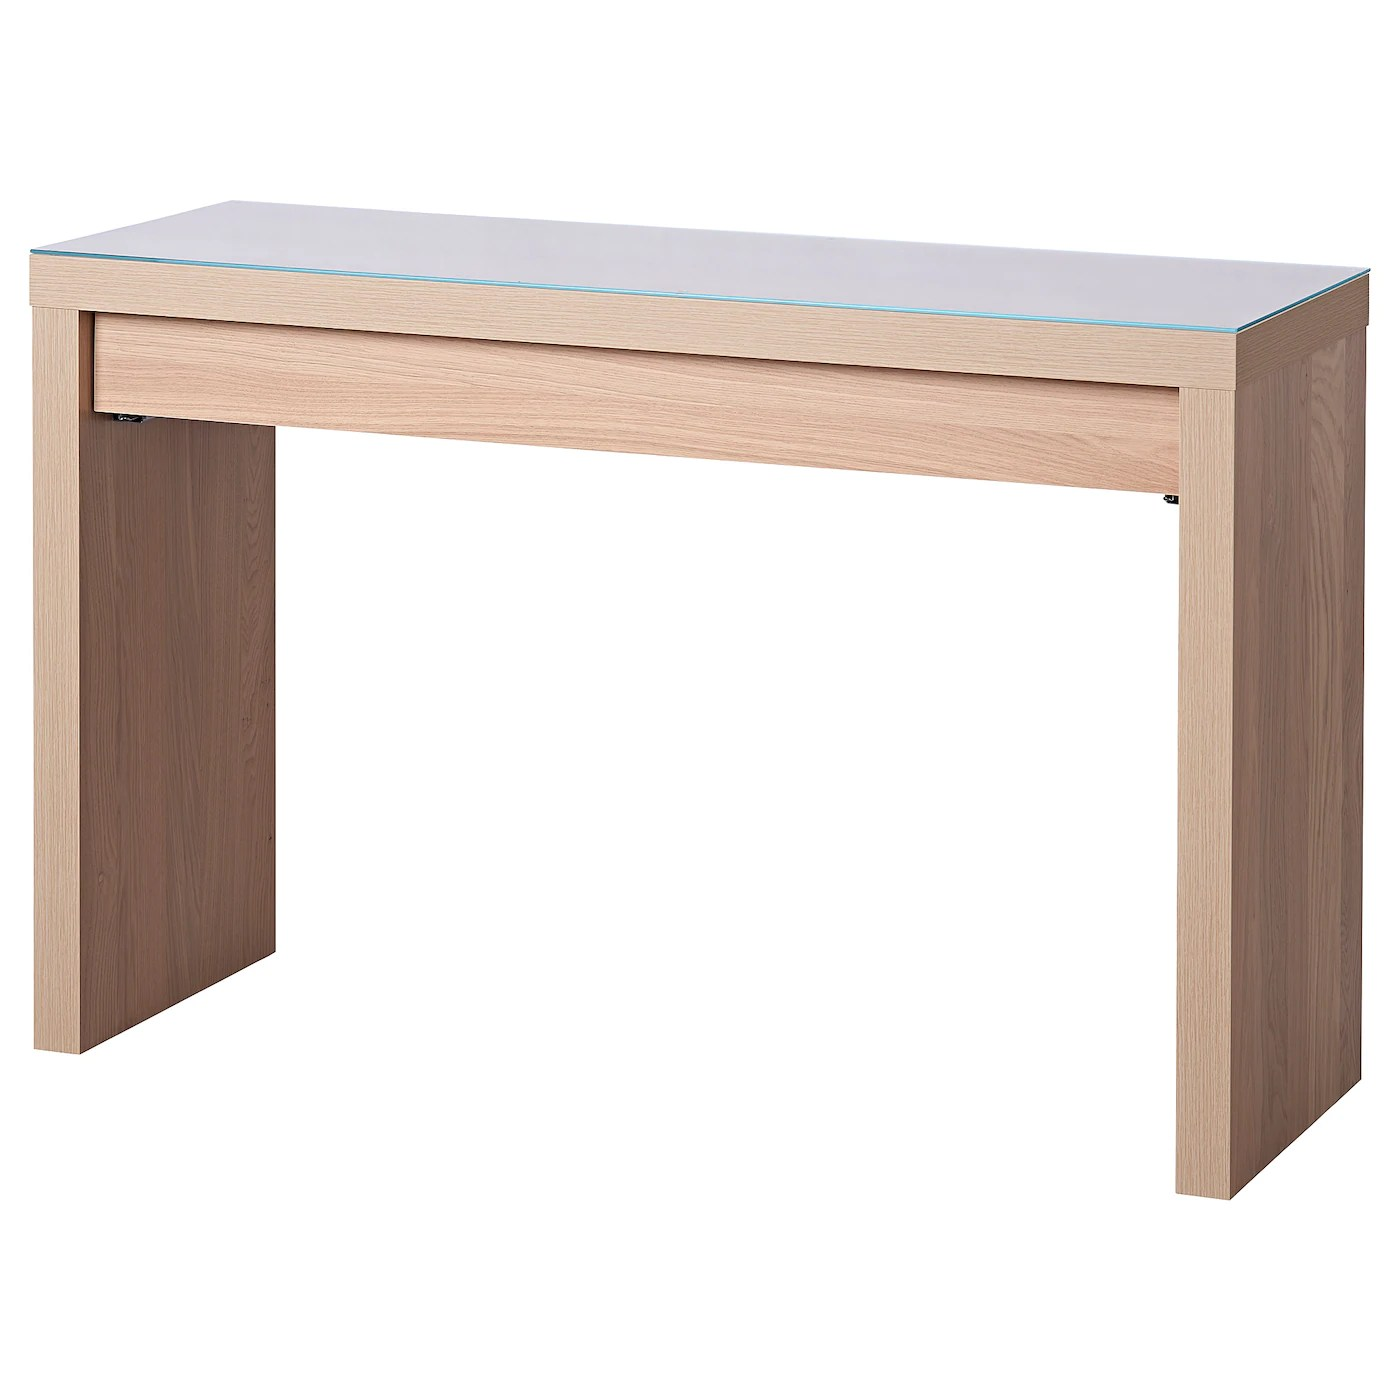 Ikea Dressing Table Malm Dressing Table White Stained Oak Veneer